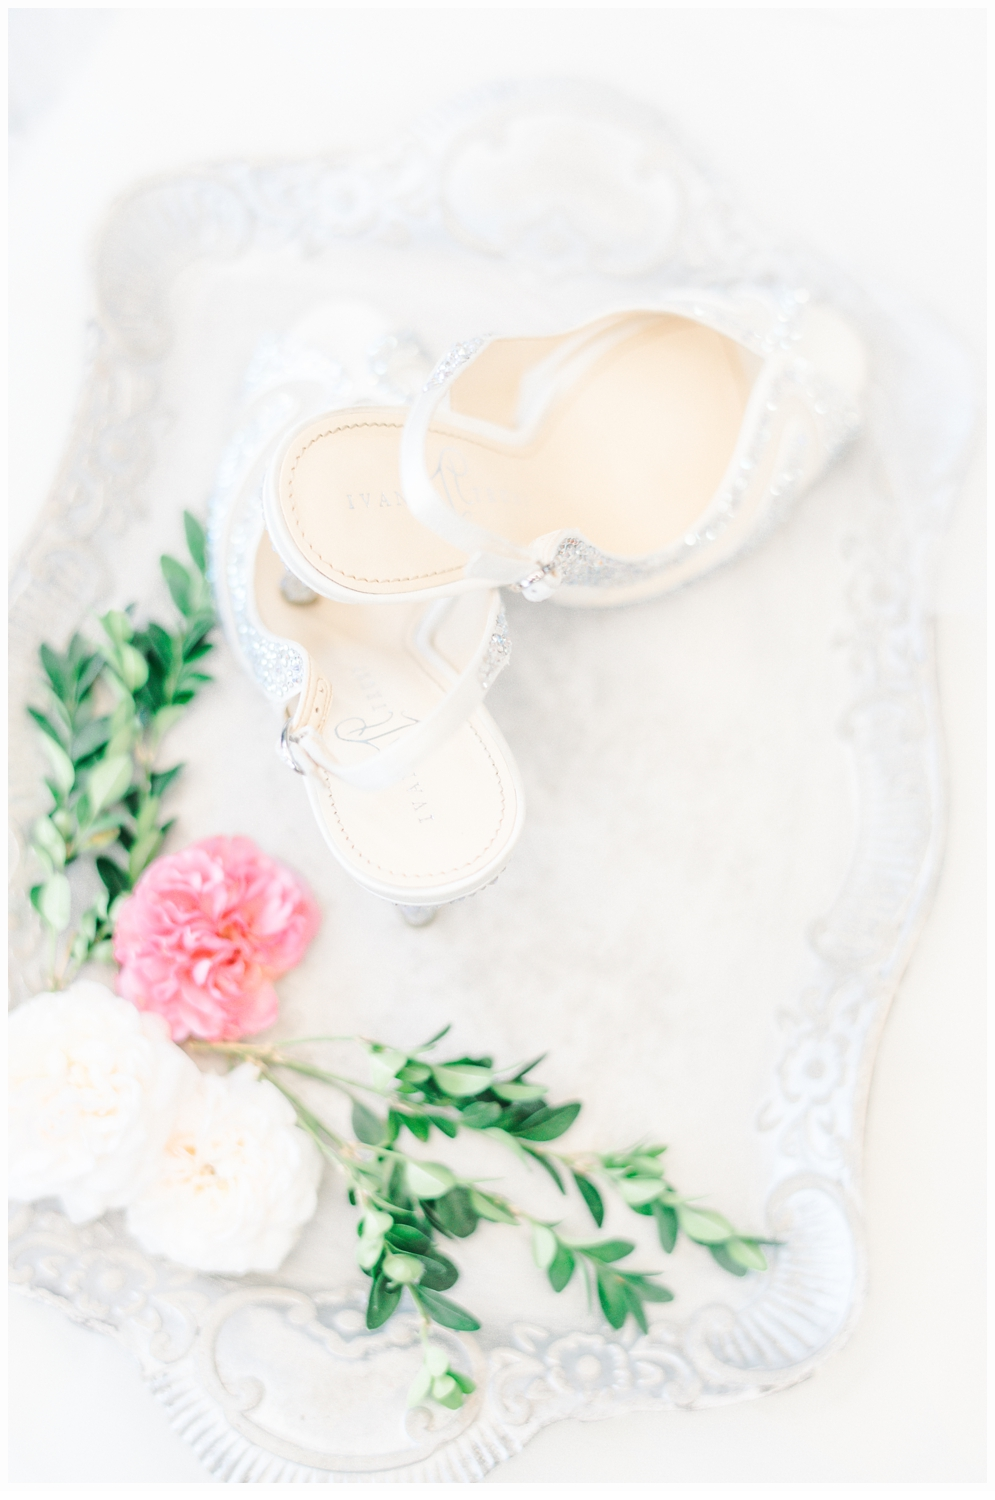 wedding shoes on pretty tray